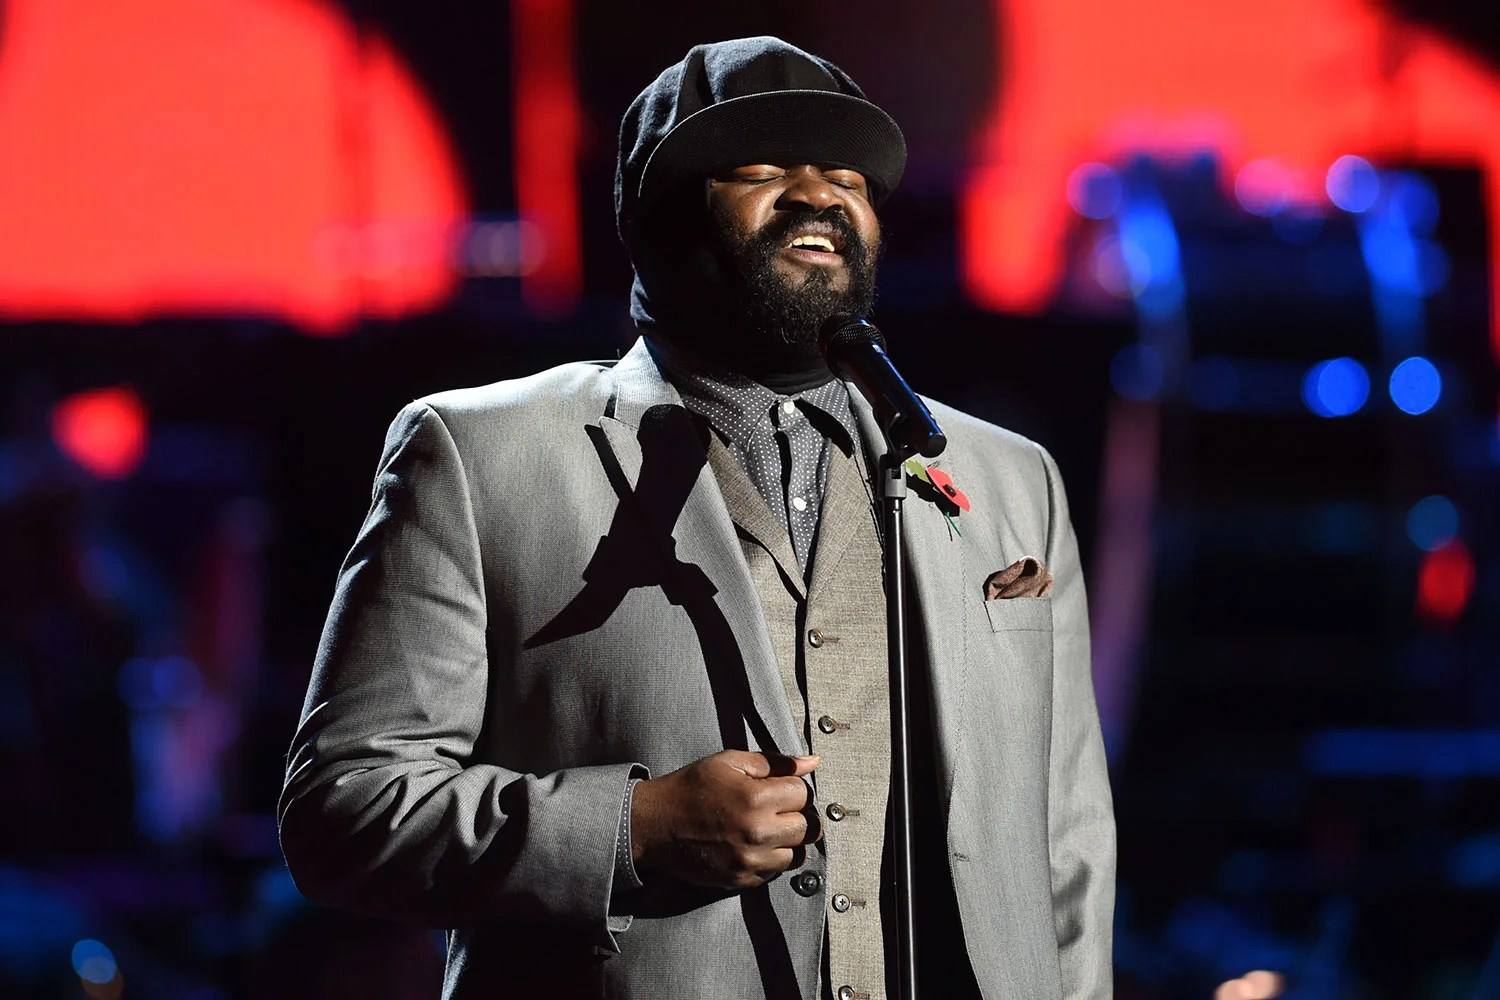 Le Meilleur Gregory Porter – Take Me To The Alley Review 'Strength Ce Mois Ci